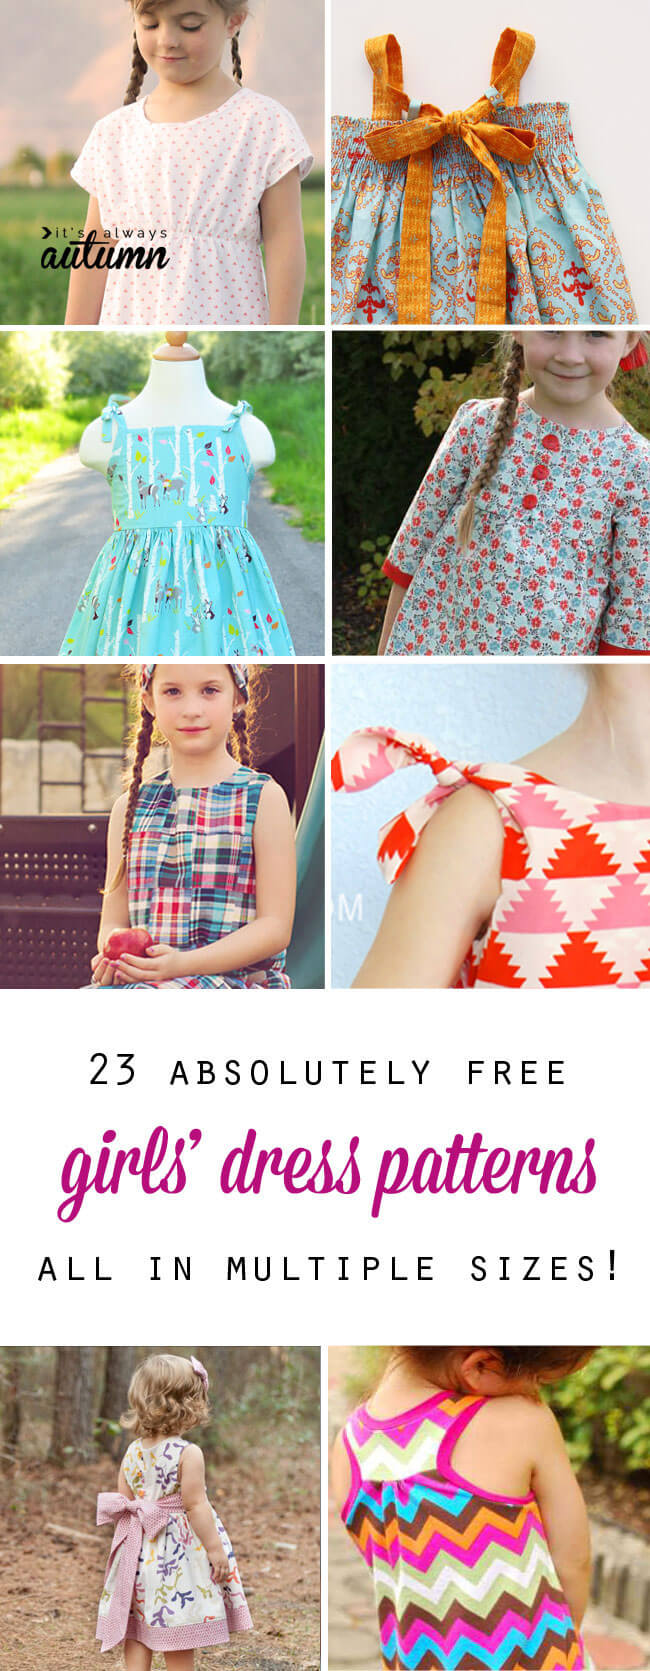 girl-free-dress-pattern-printable-multi-sizes-charity-sewing-easy-tutorial-best-pinnable-revised1